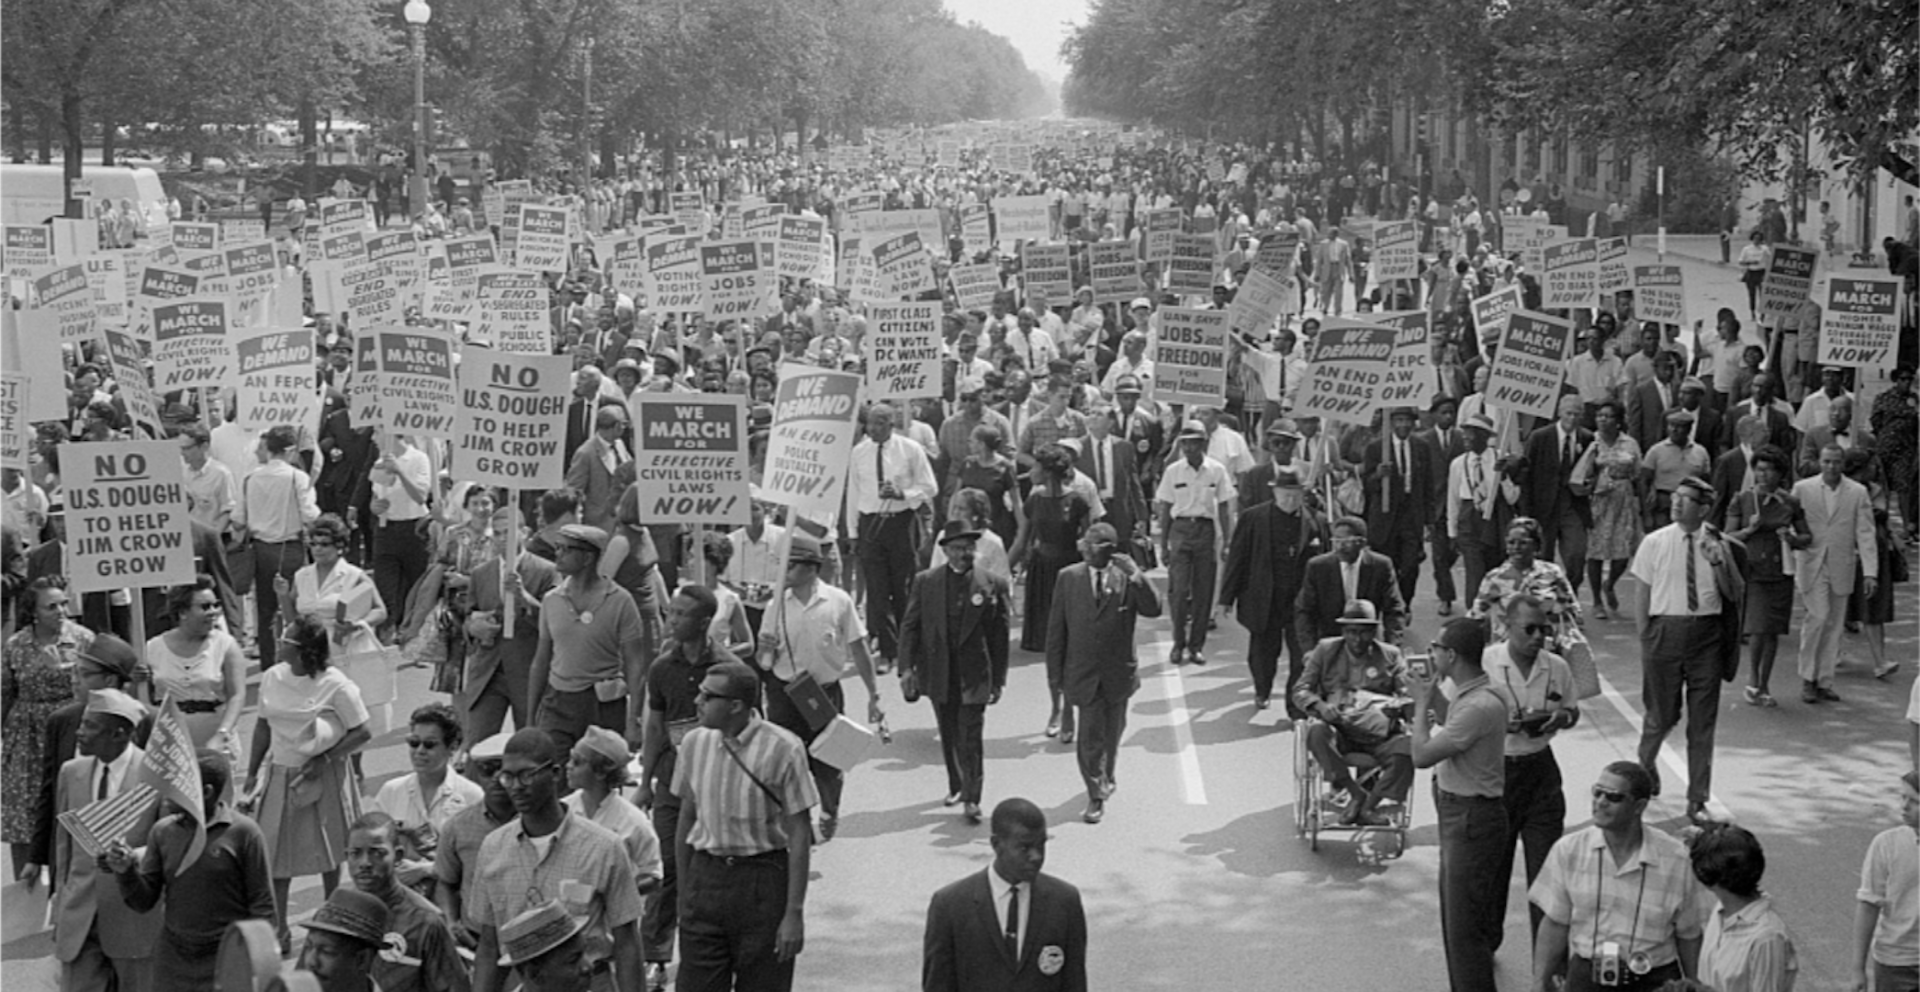 "A scene from the original March on Washington, where Rev. Martin Luther King Jr., delivered his iconic ""I Have A Dream Speech"" in 1963. Demonstrators will again gather in Washington on Friday to call for racial justice and police reform."